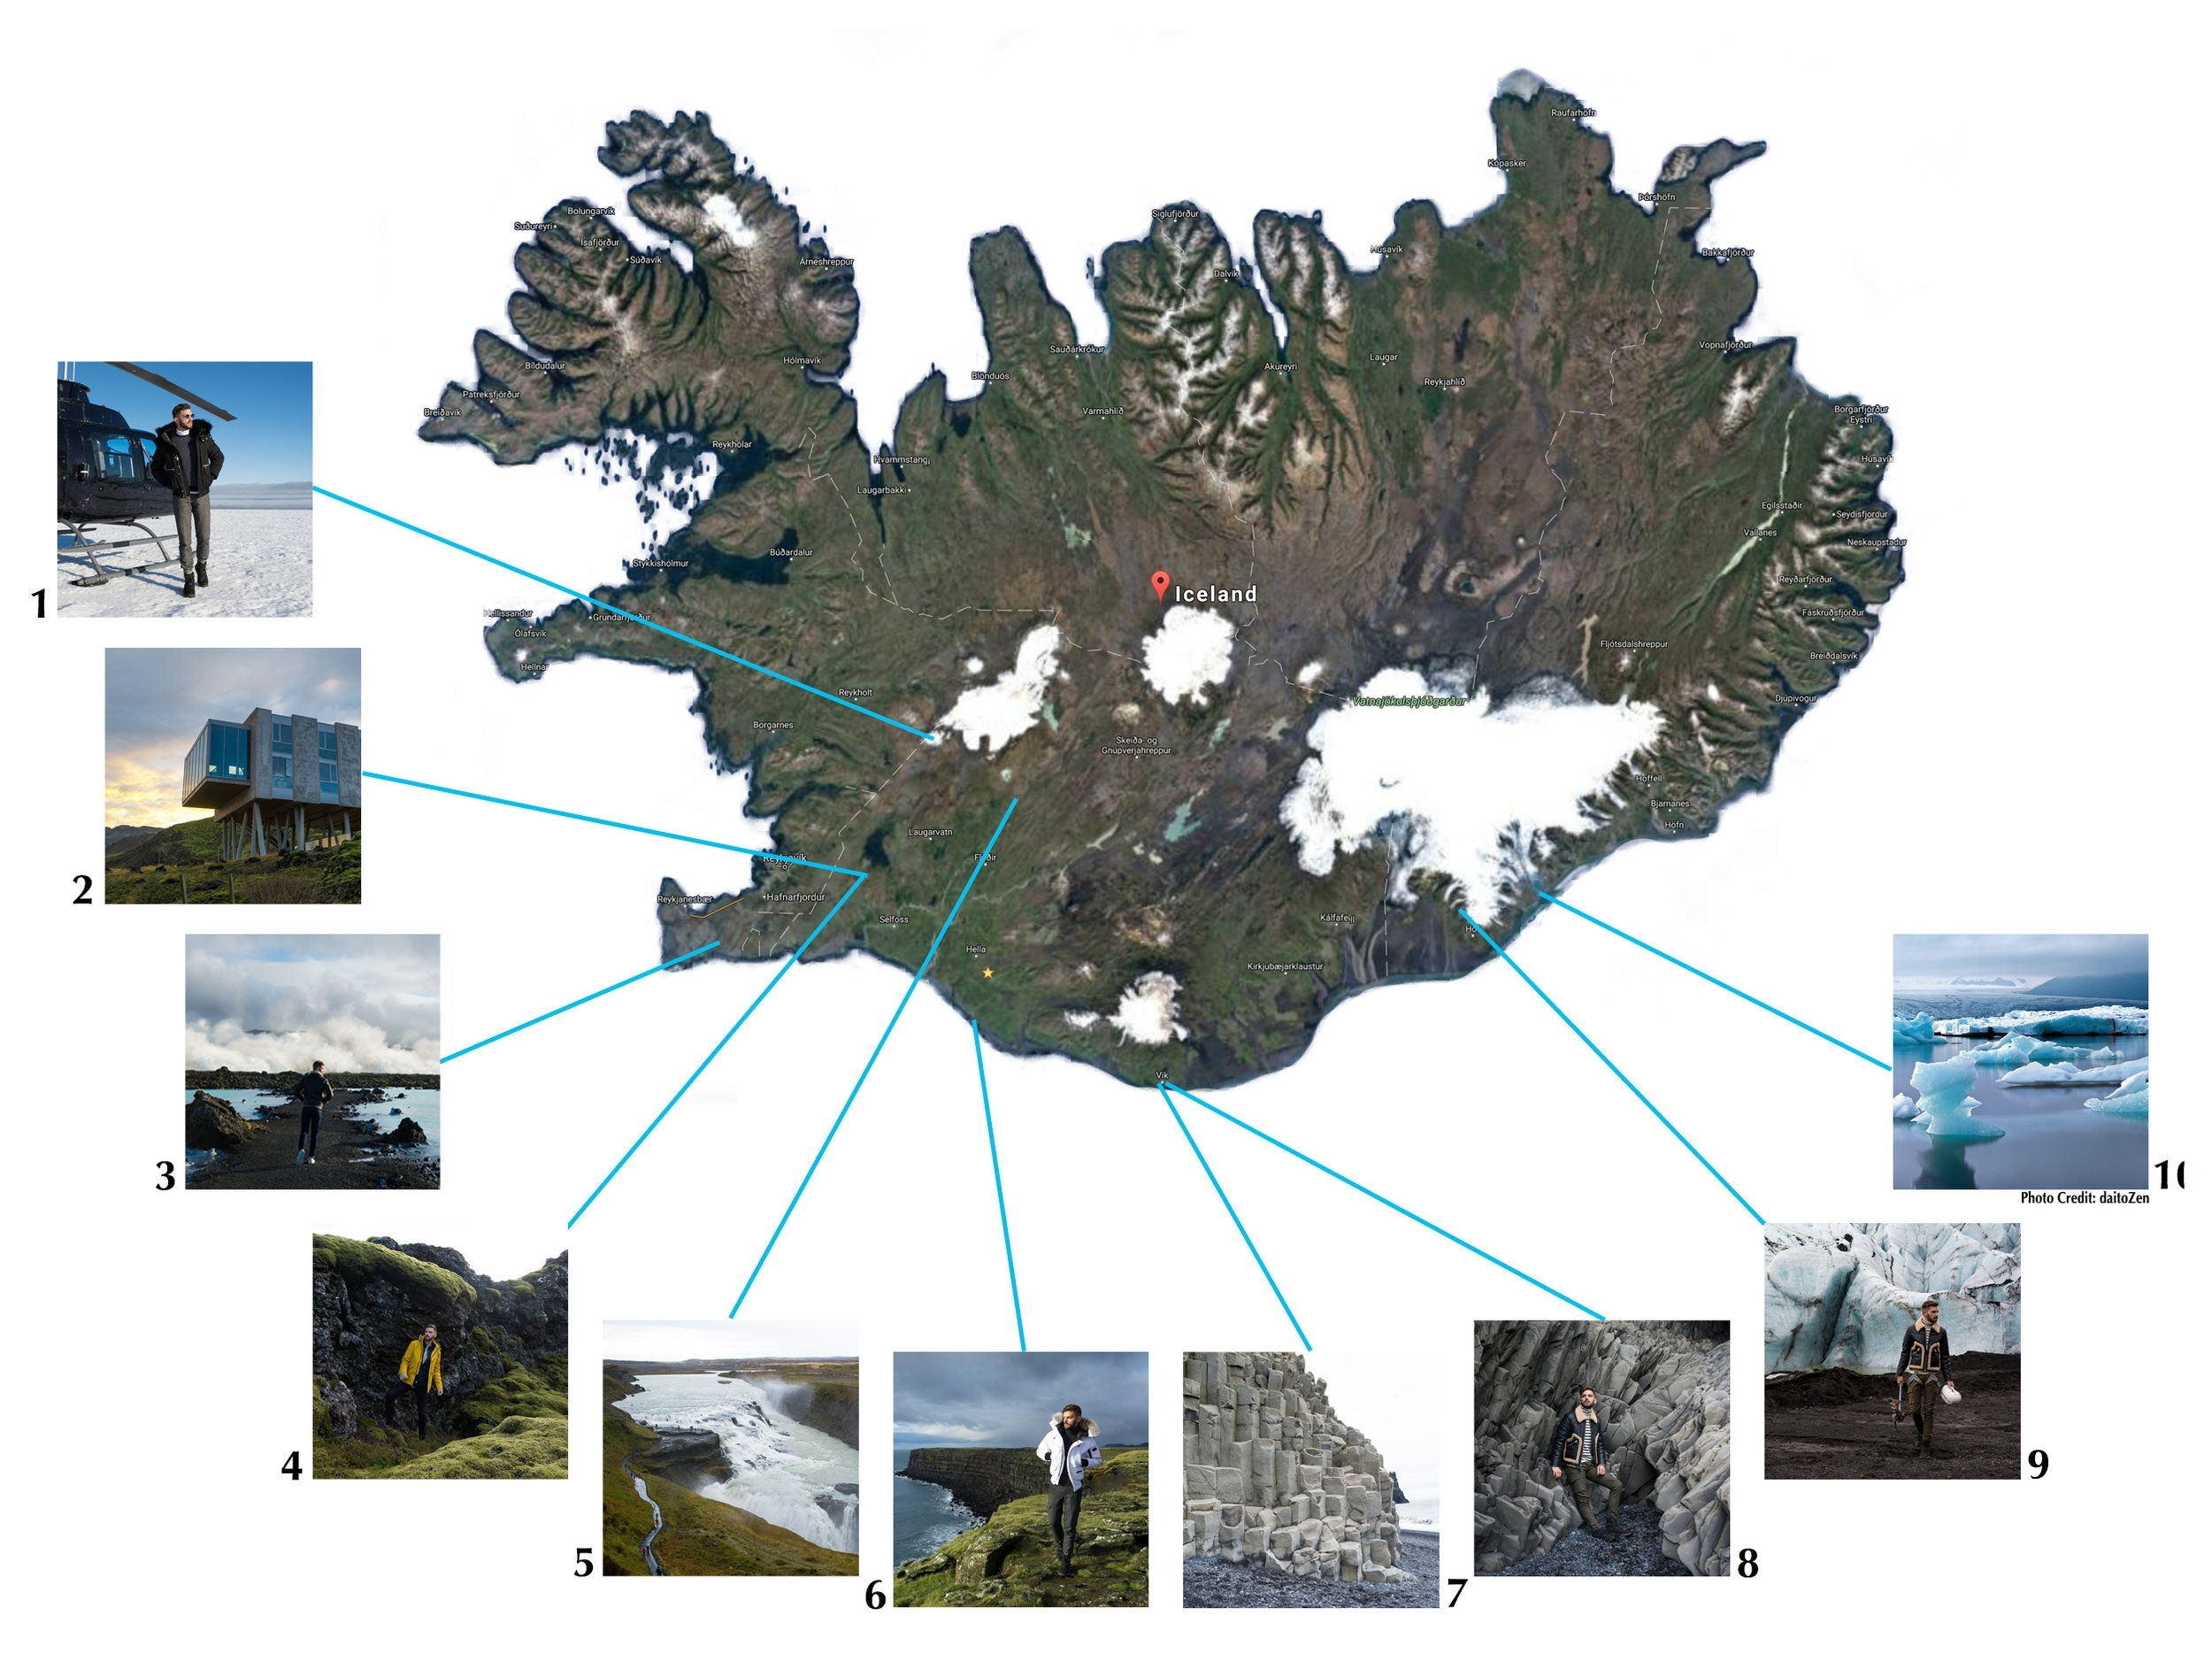 1.  Helicopter landing  spot on Langjökull Glacier.  2.  Ion Adventure Hotel   3.  Blue Lagoon   4. Mossy green Hiking trails behind ION Hotel  5. Gullfoss Waterfall  6. Southern cliffs  7. Black Sand Beach  8. More rock faces at Black Sand Beach  9. Glacier hike at Svínafellsjökull  10. Glacier Lagoon